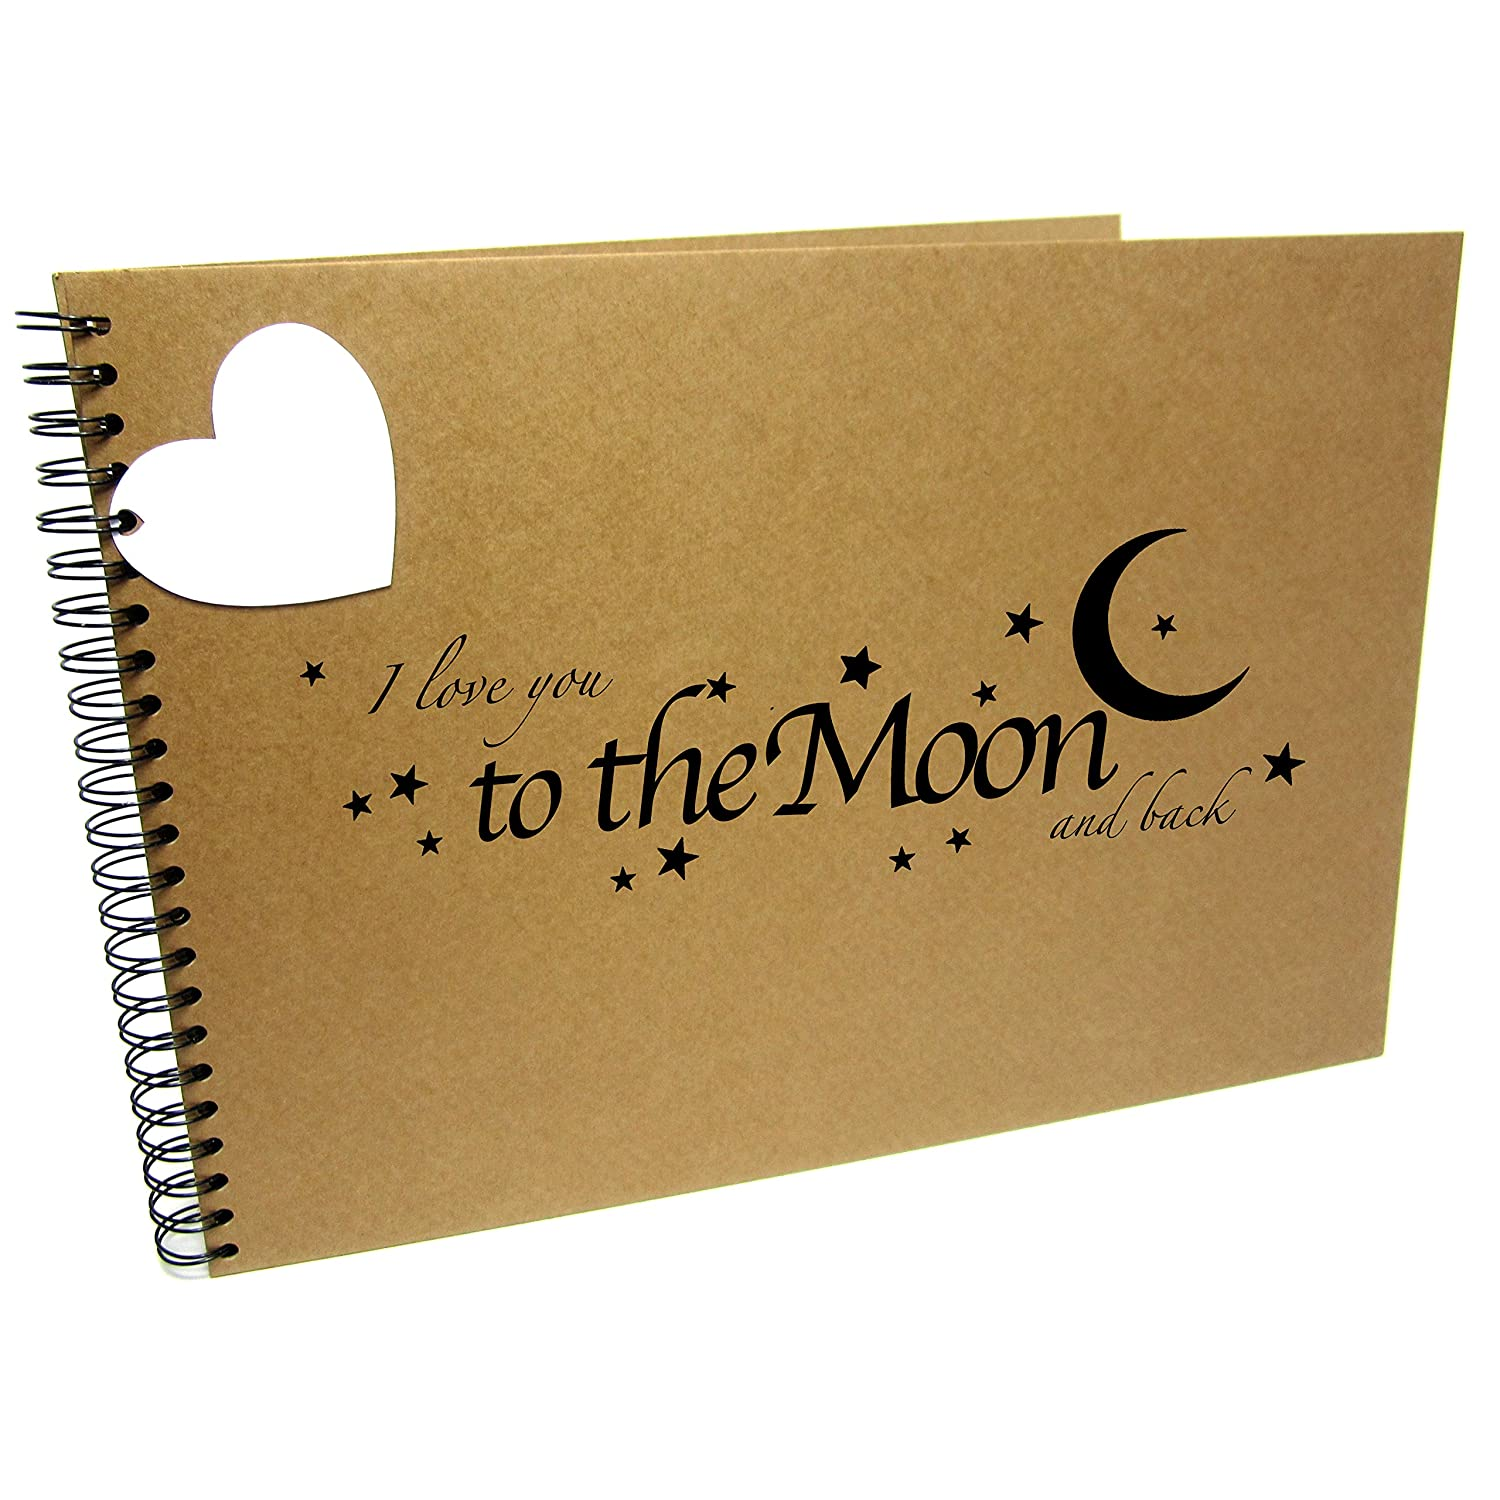 A3/XL Square Moon and Back, Scrapbook, Card Pages, Photo Album, Keepsake, Landscape (A3 (Black Pages)) Scrapbook Wonderland